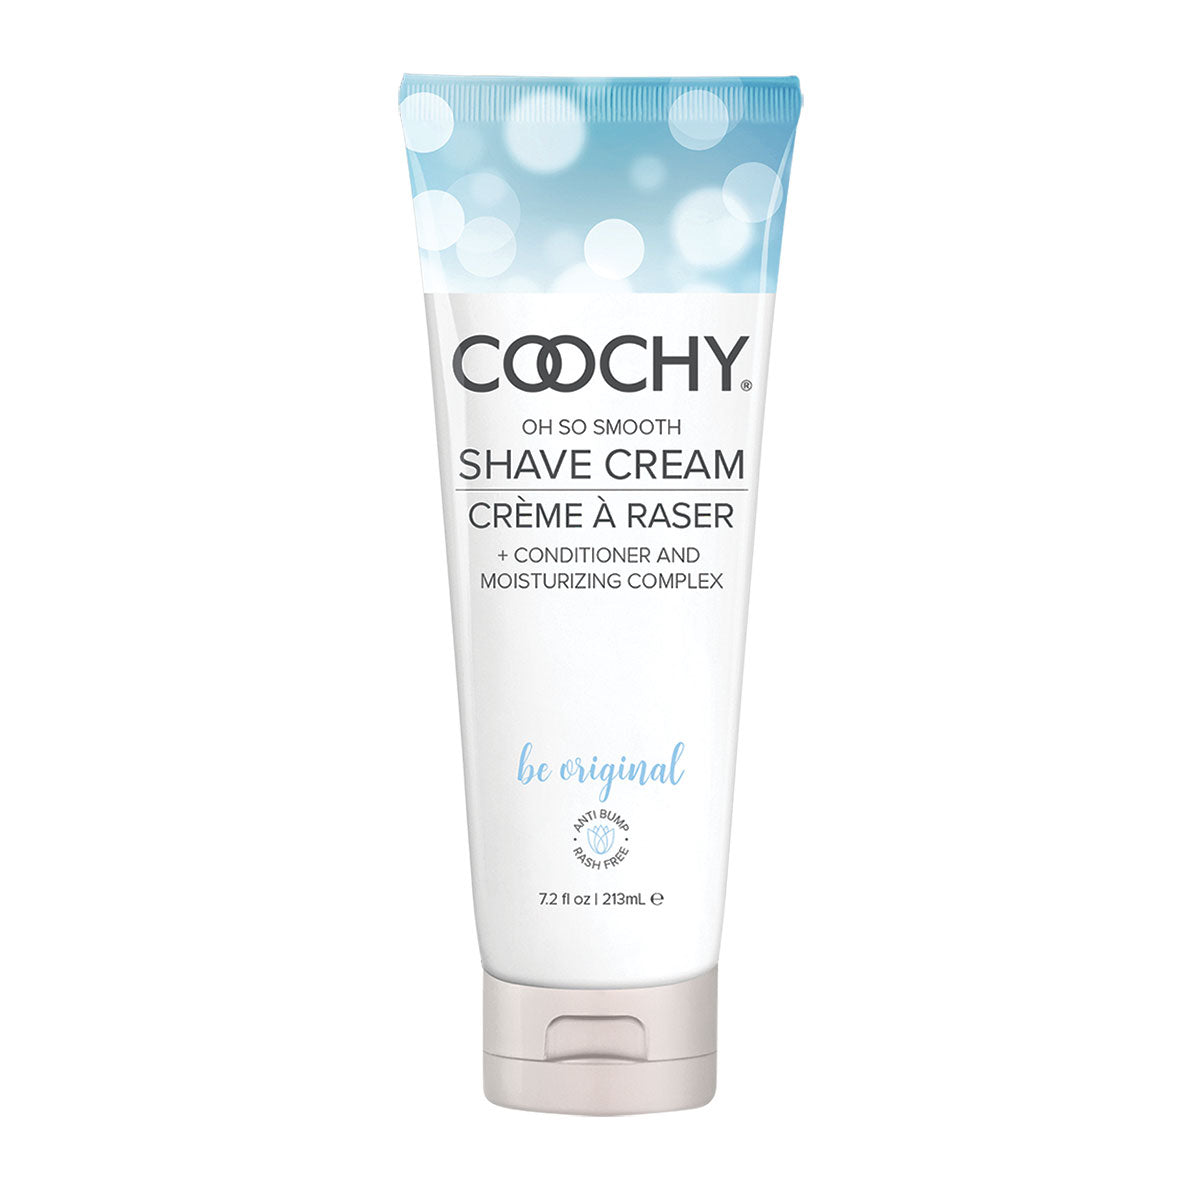 Coochy Oh So Smooth Shave Cream - Be Original 7.2